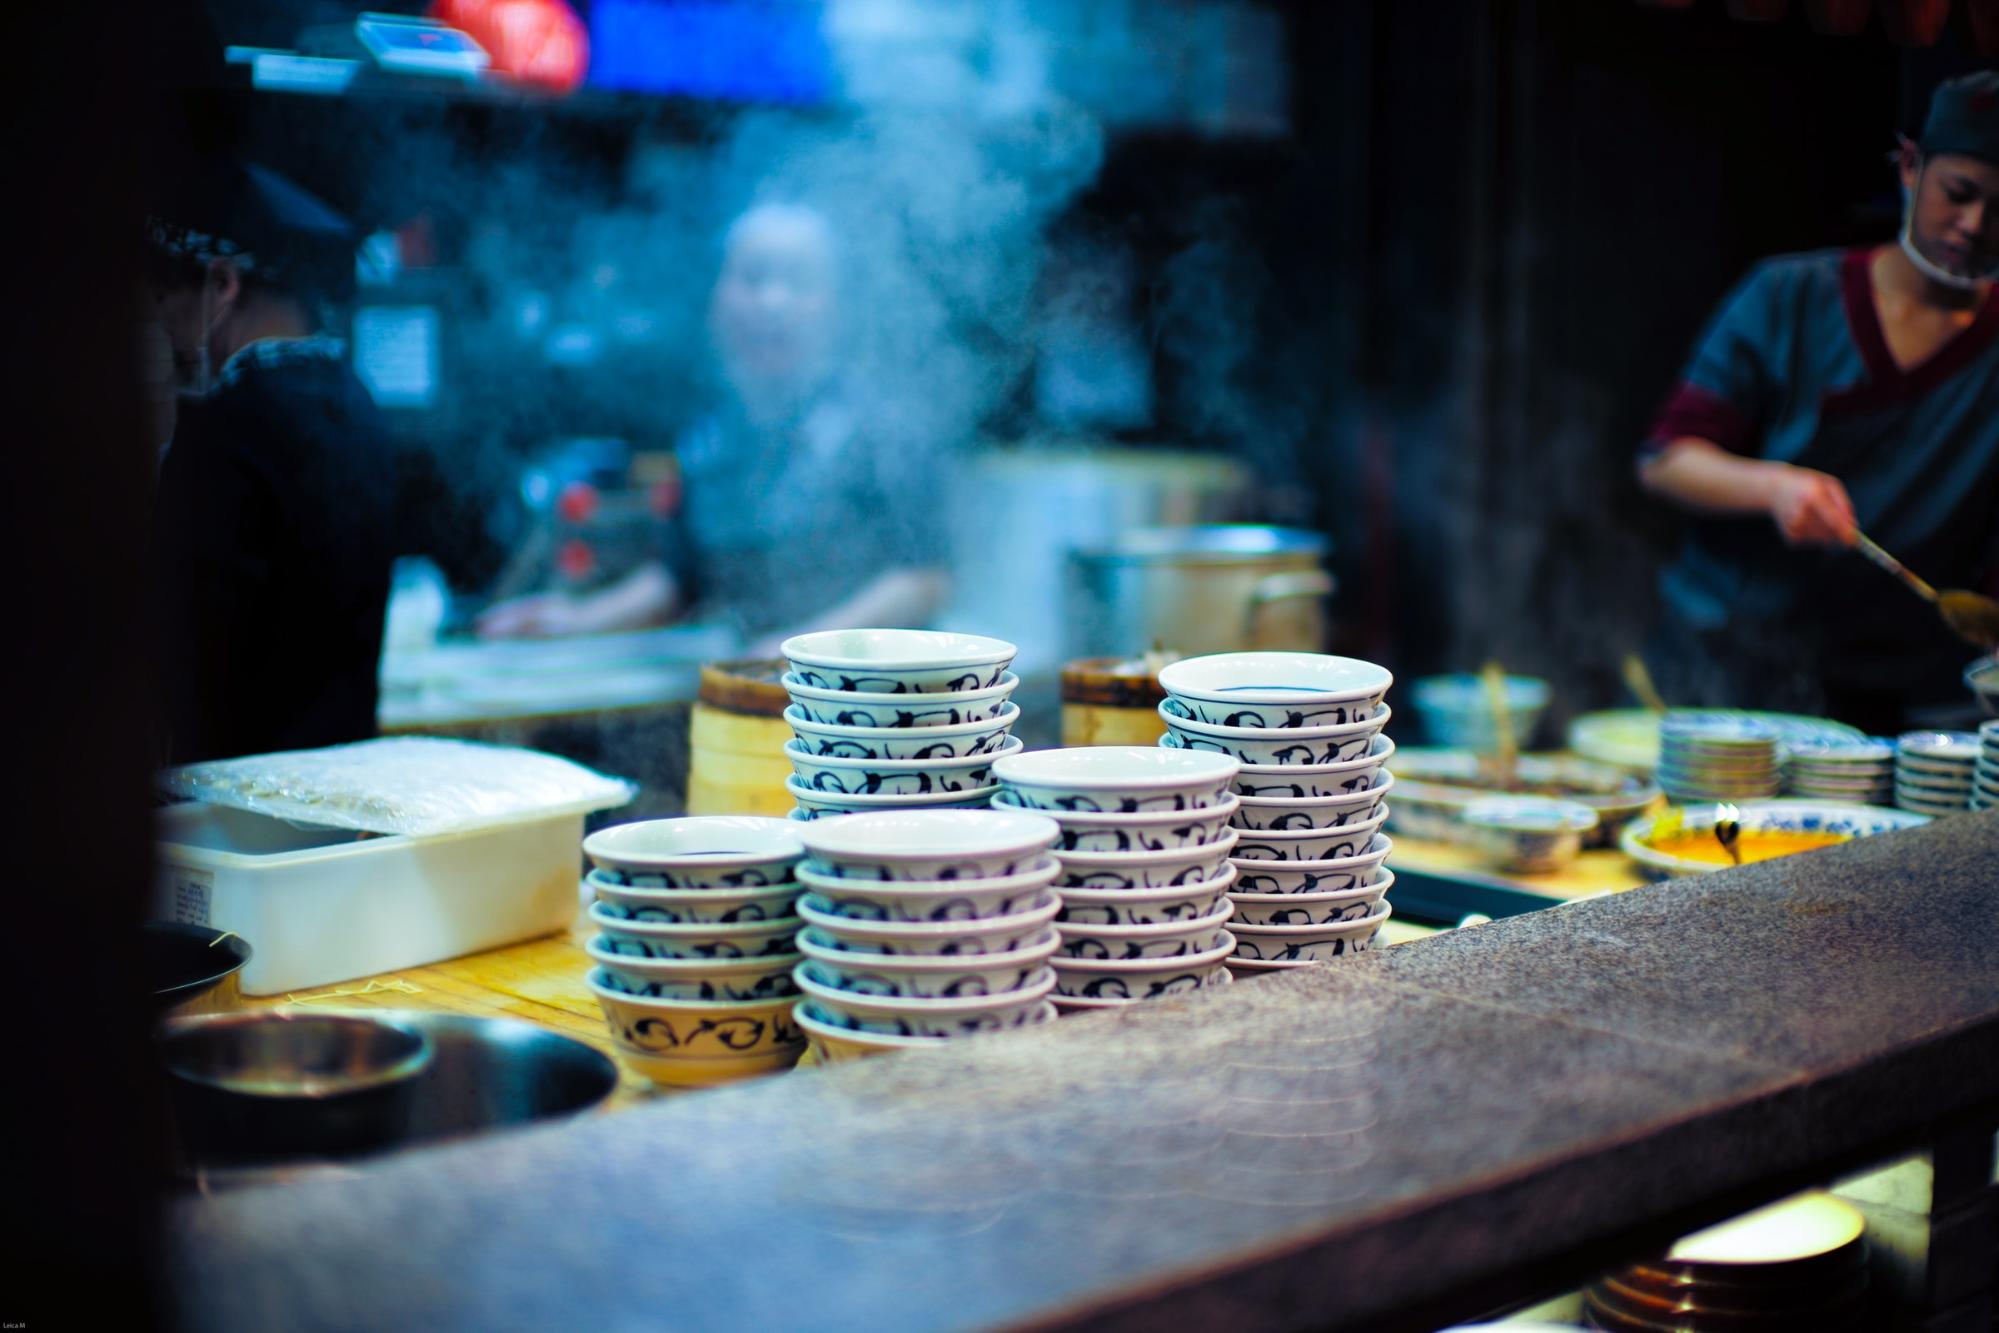 Dishes piled up at a restaurant